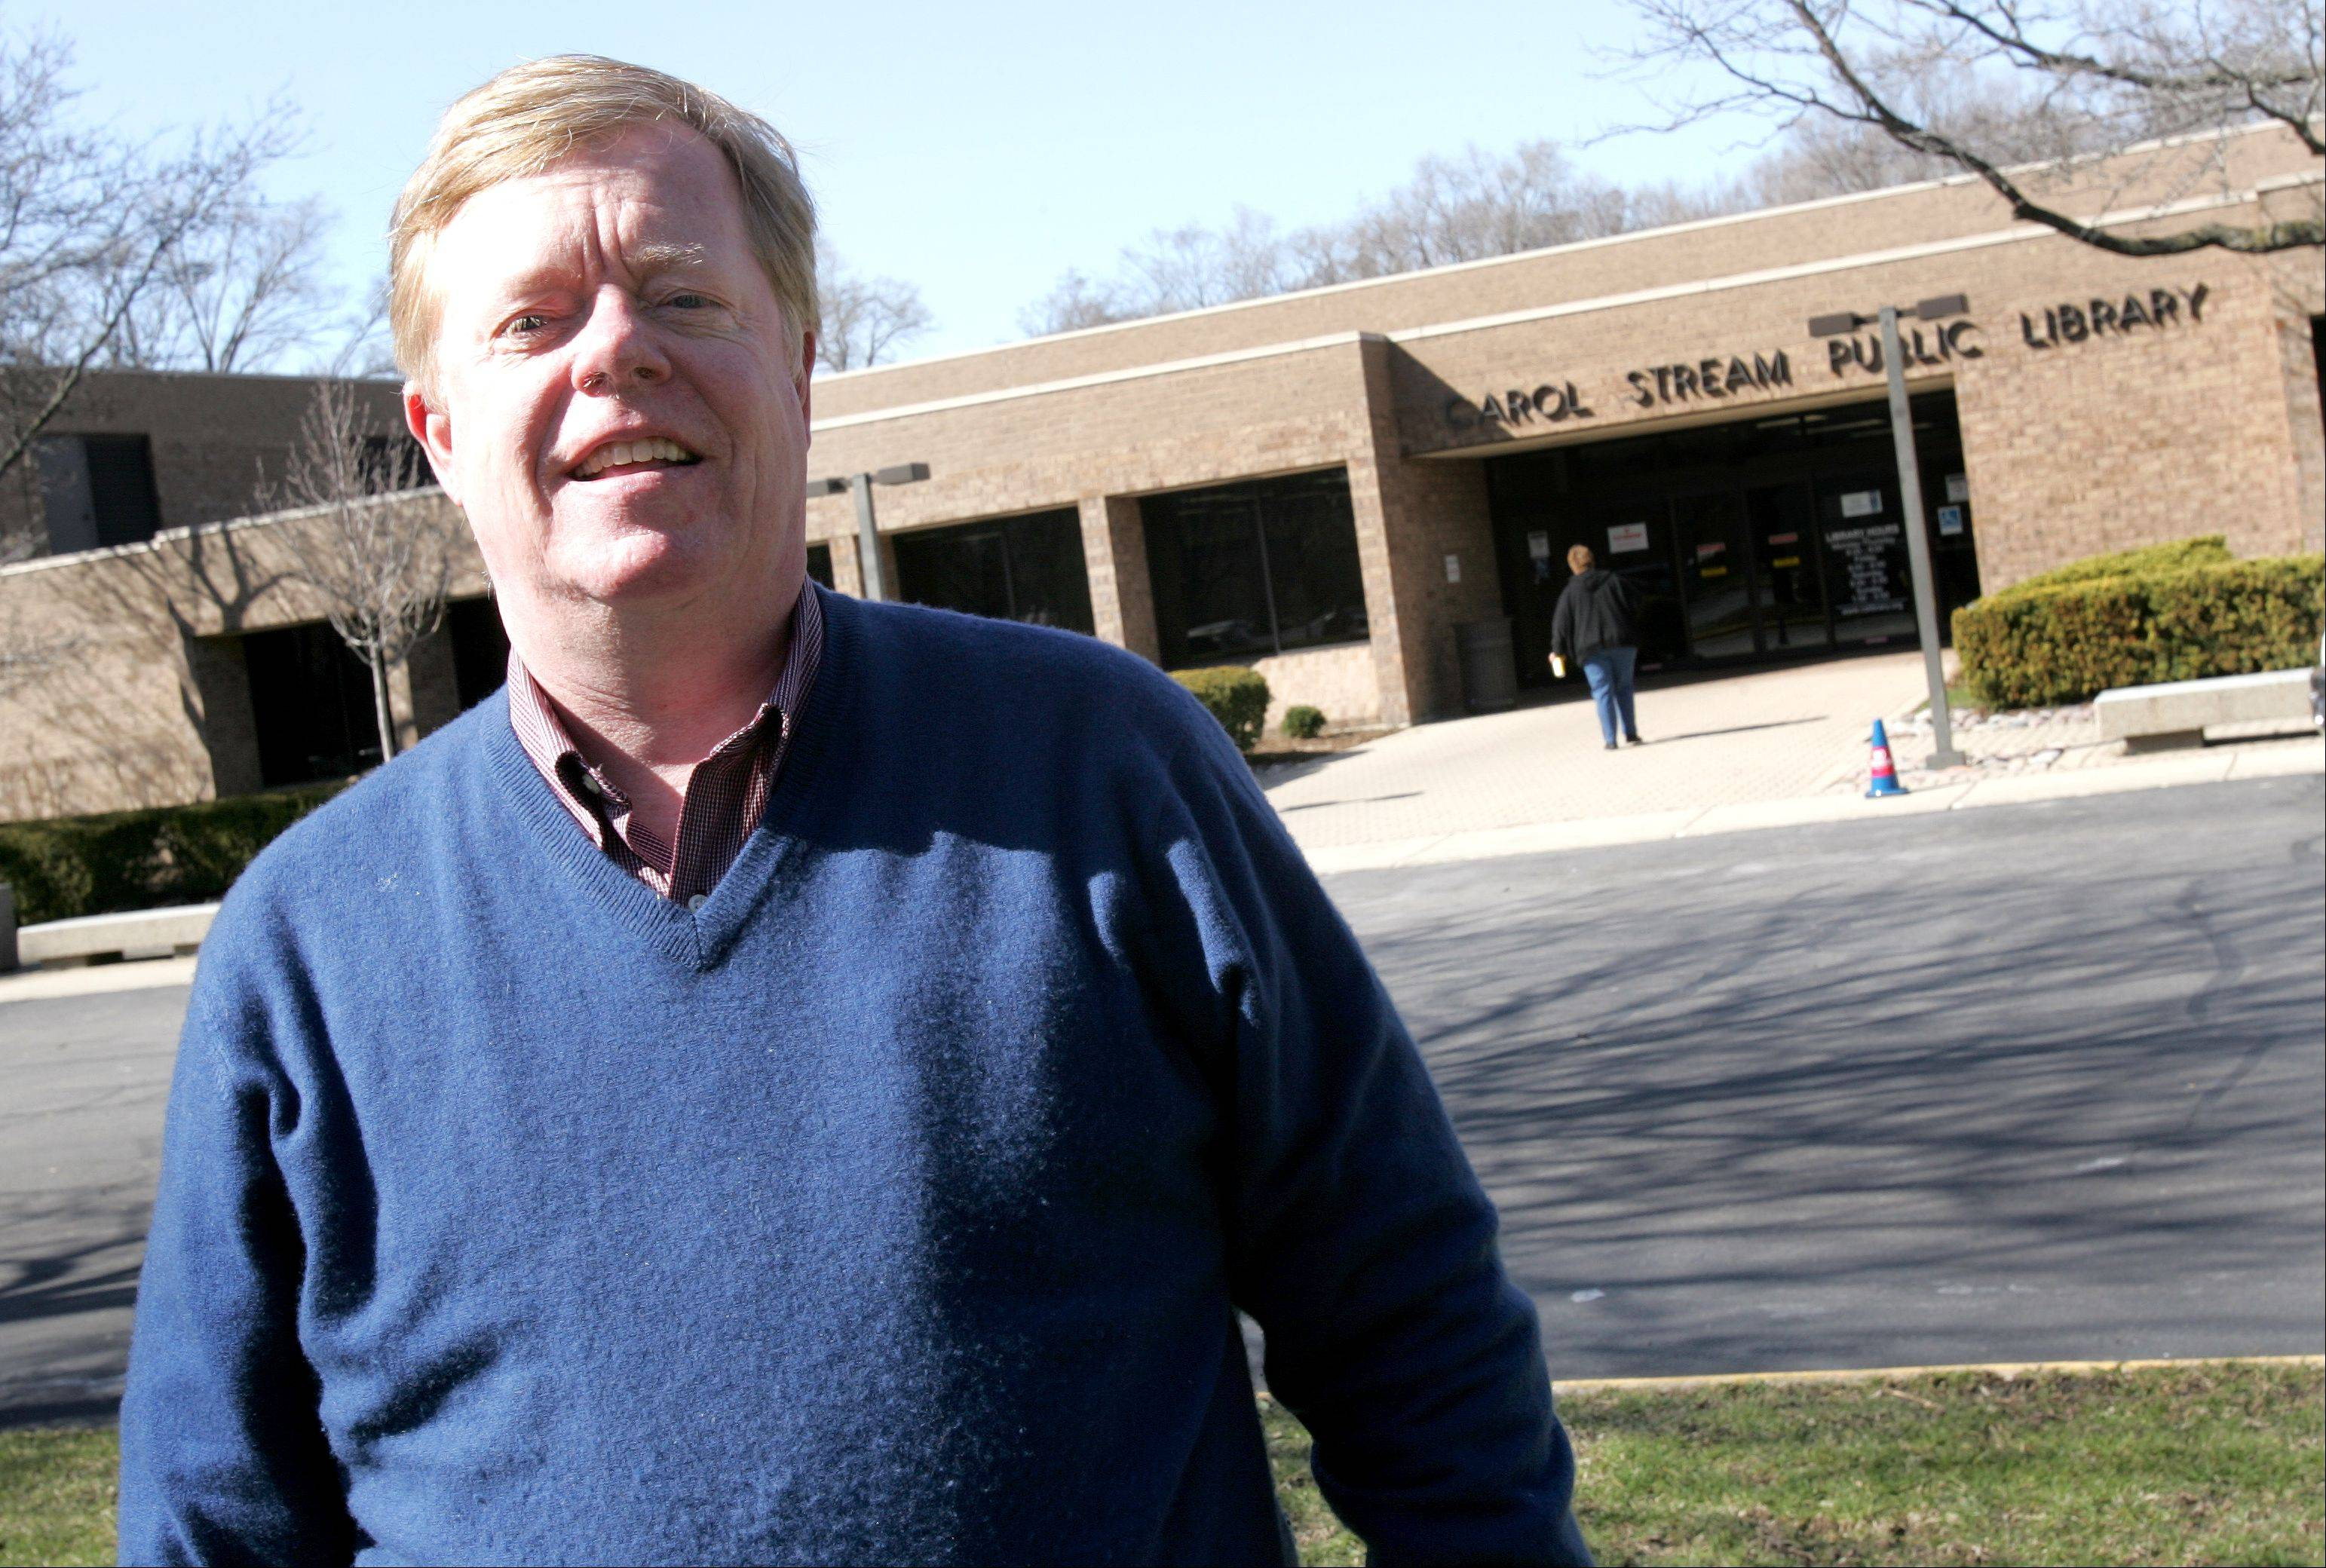 Tom Arends, a five-year incumbent of the Carol Stream Library board, is stepping down because he is moving to Chicago.